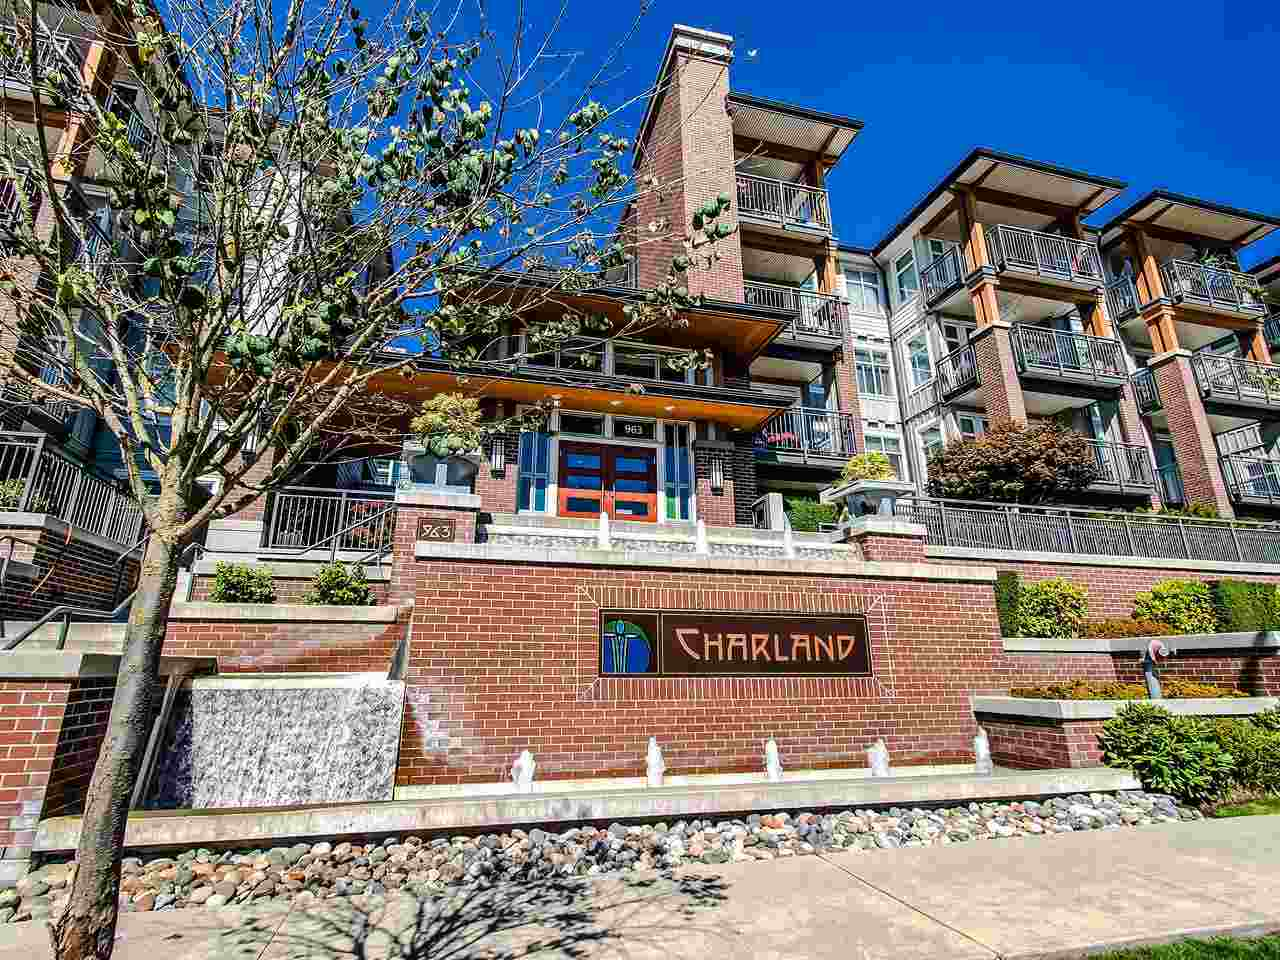 FEATURED LISTING: 2104 - 963 CHARLAND Avenue Coquitlam